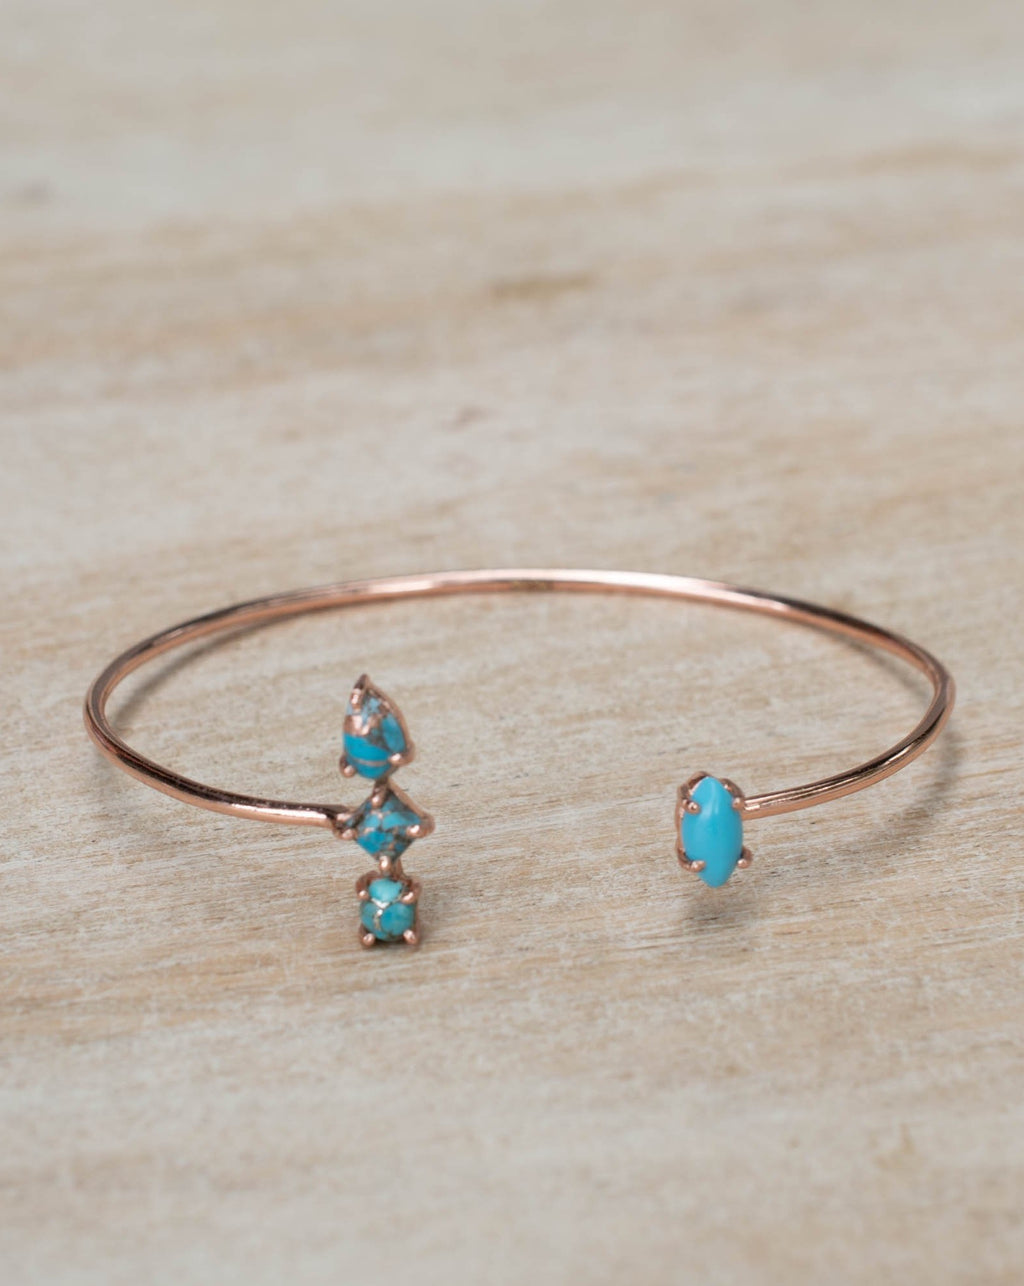 Copper Turquoise Bohemian Bangle Bracelet * Rose Gold Plated * Gemstone * Gypsy * Hippie *  Adjustable * Statement *  Stacking * BJB010C